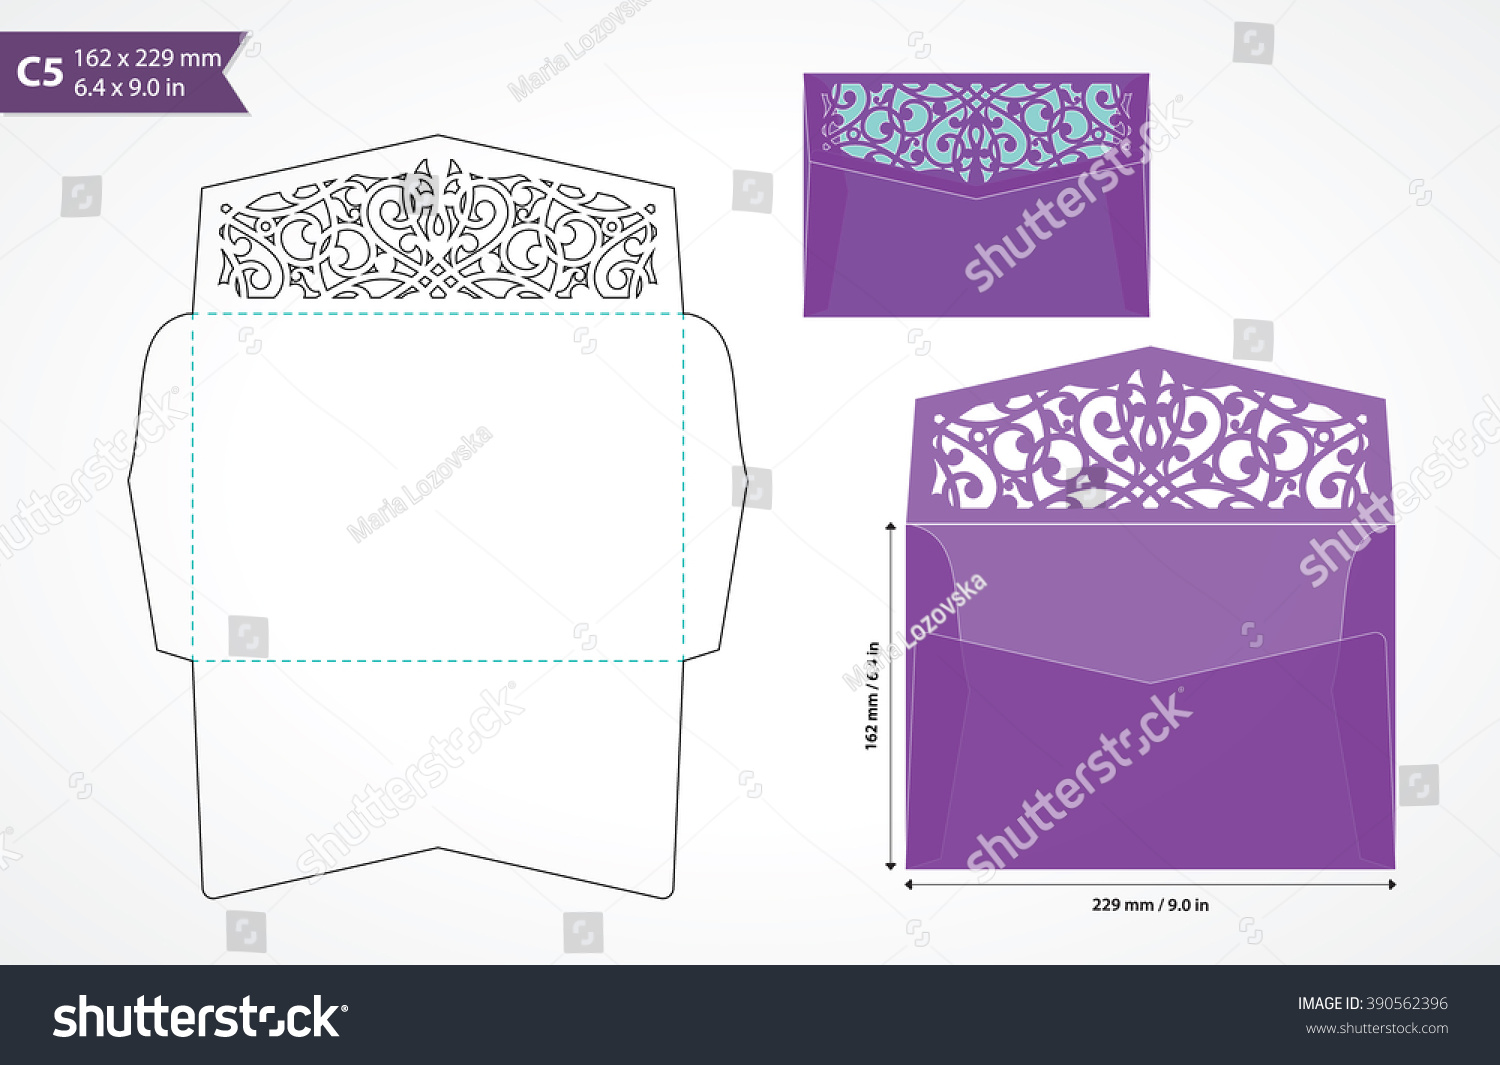 royalty free standard c5 size envelope template with 390562396